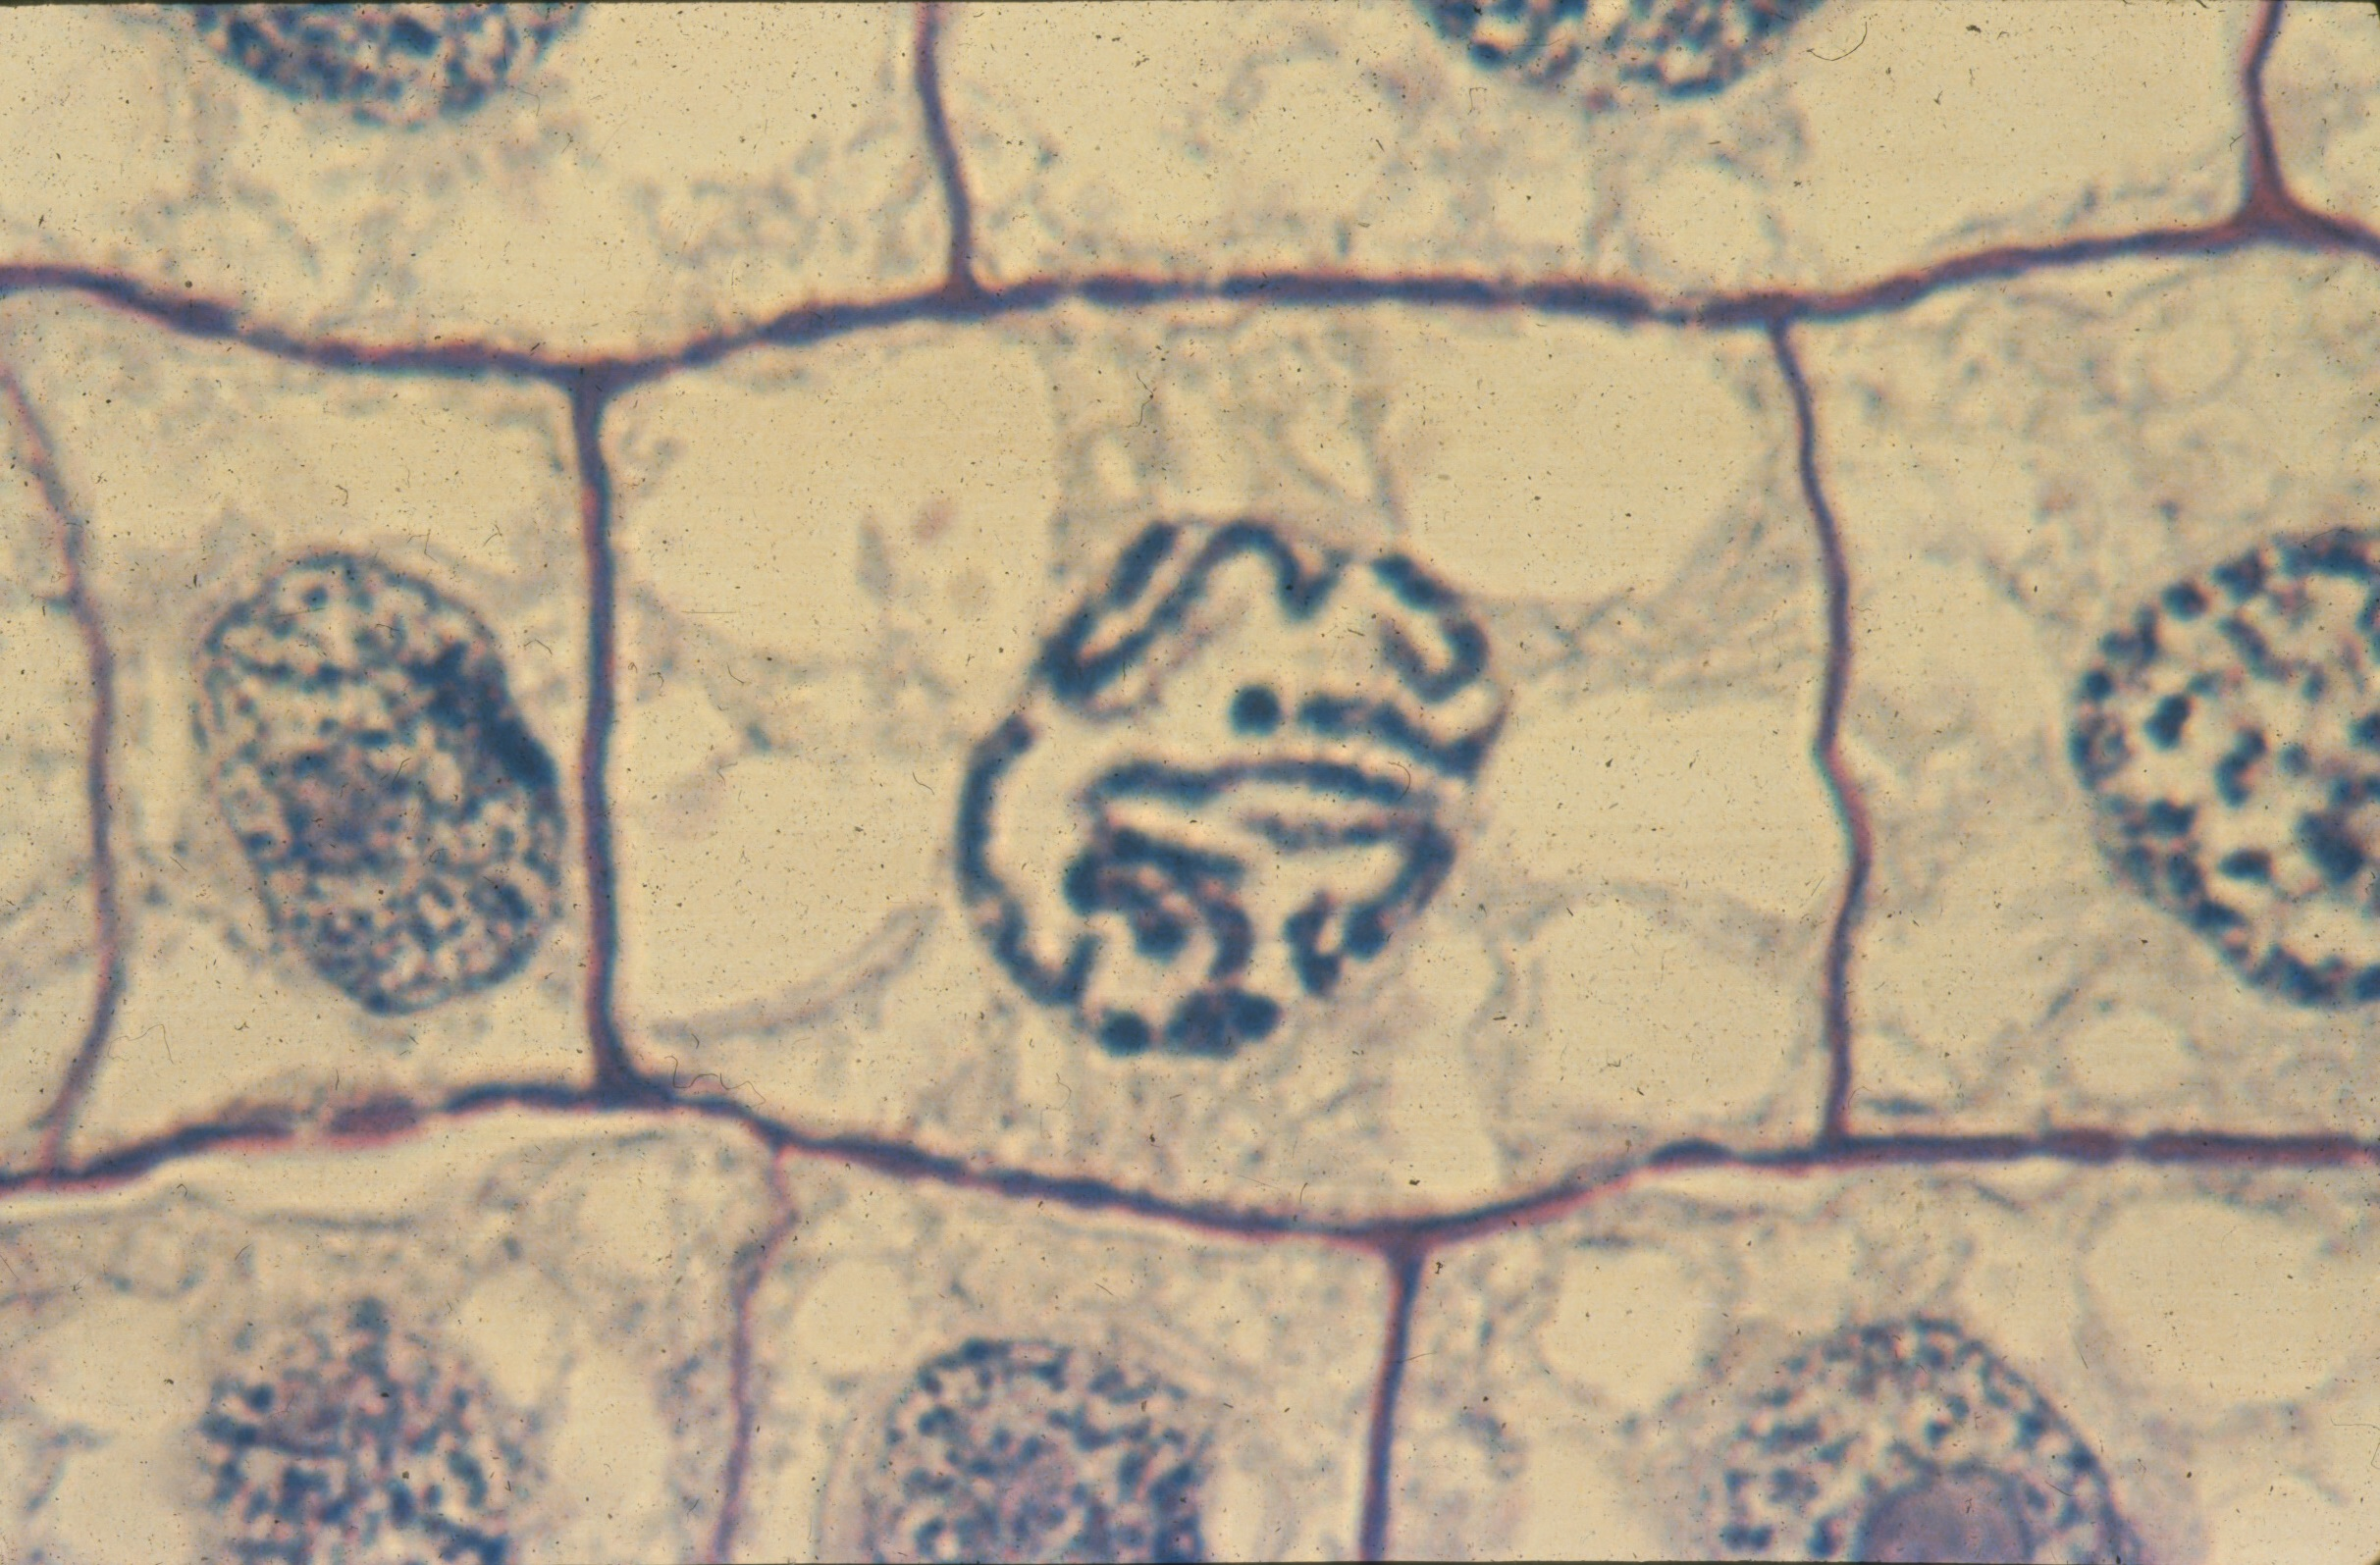 Mitosis, White Fish, and Allium Slides